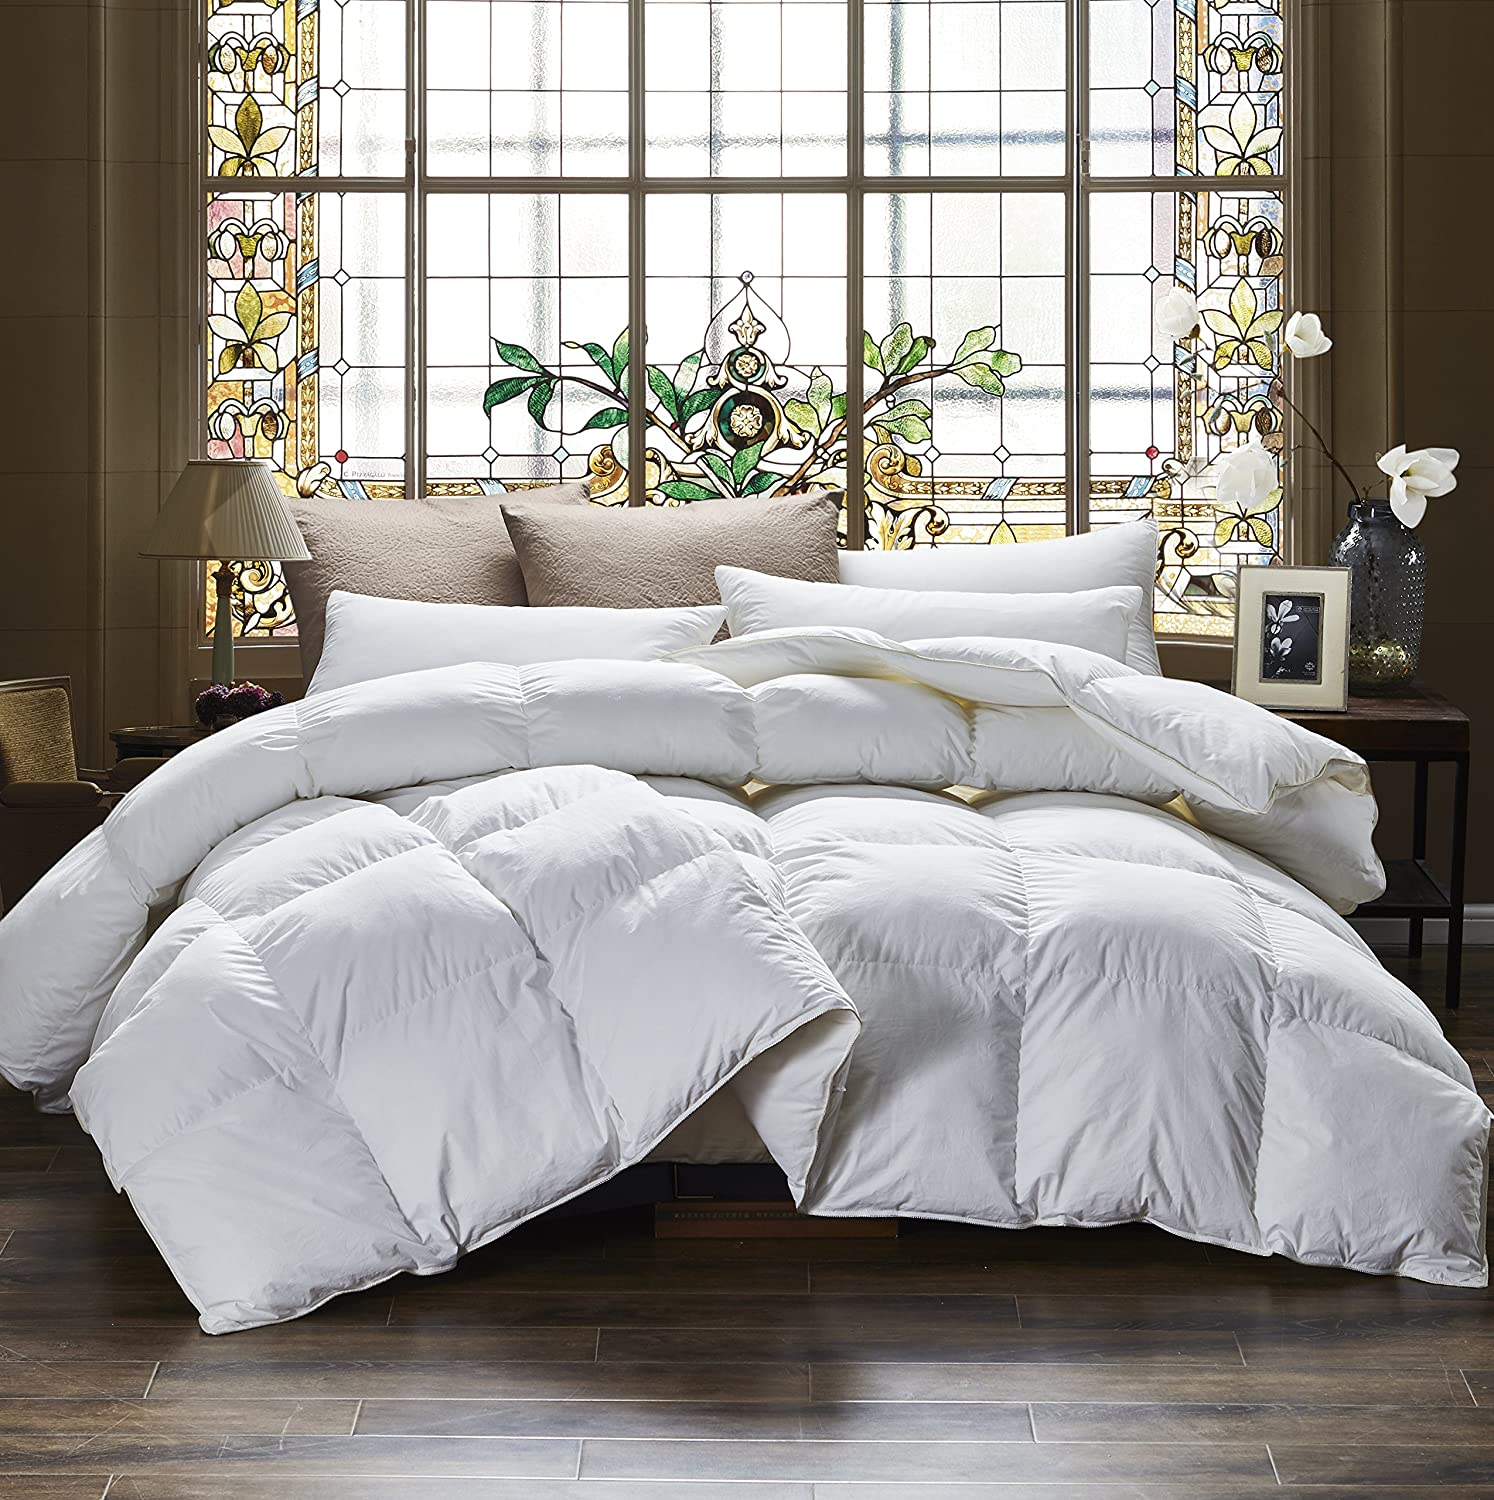 me twin bed deco duvet quilt sets white bedding set single comforter quilts nnect king co double fluffy big cover ashton covers